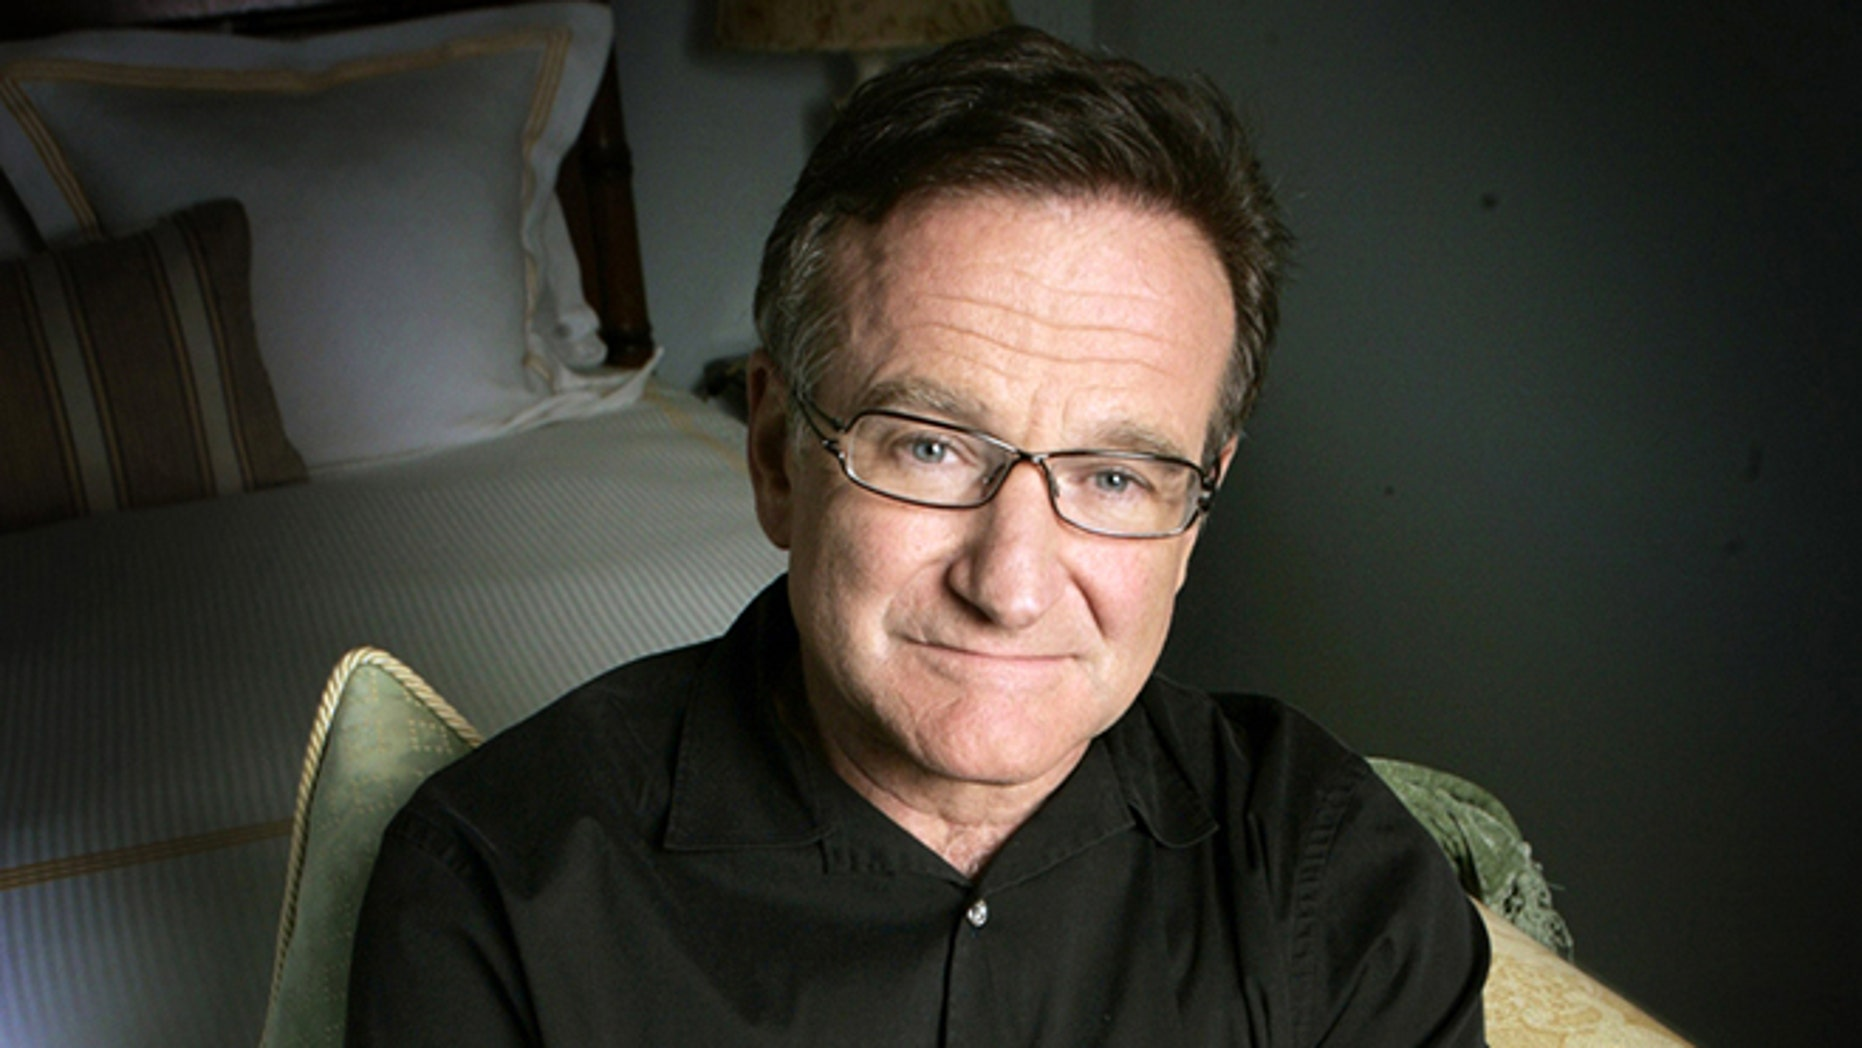 FILE - This June 15, 2007 file photo shows actor and comedian Robin Williams posing for a photo in Santa Monica, Calif. Williams, whose free-form comedy and adept impressions dazzled audiences for decades, died Monday, Aug. 11, 2014, in an apparent suicide. Williams was 63.  (AP Photo/Reed Saxon, File)